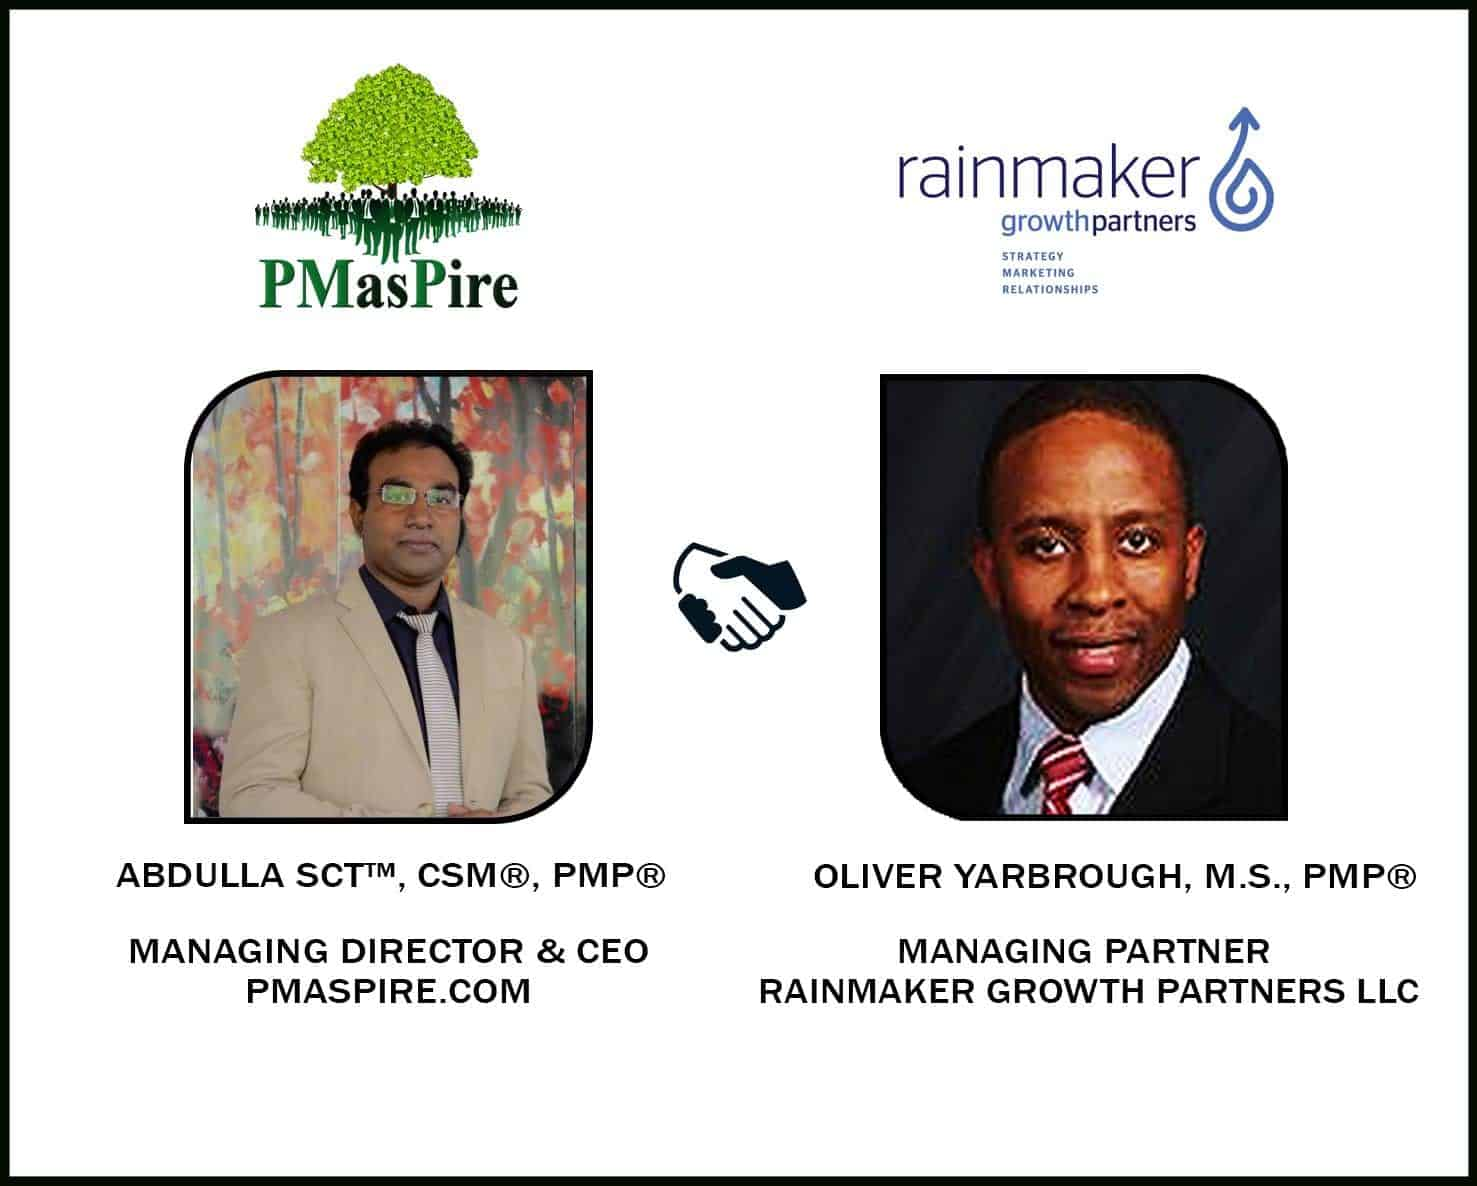 PMASPIRE.COM signed with RAINMAKER GROWTH PARTNERS, LLC for US Market